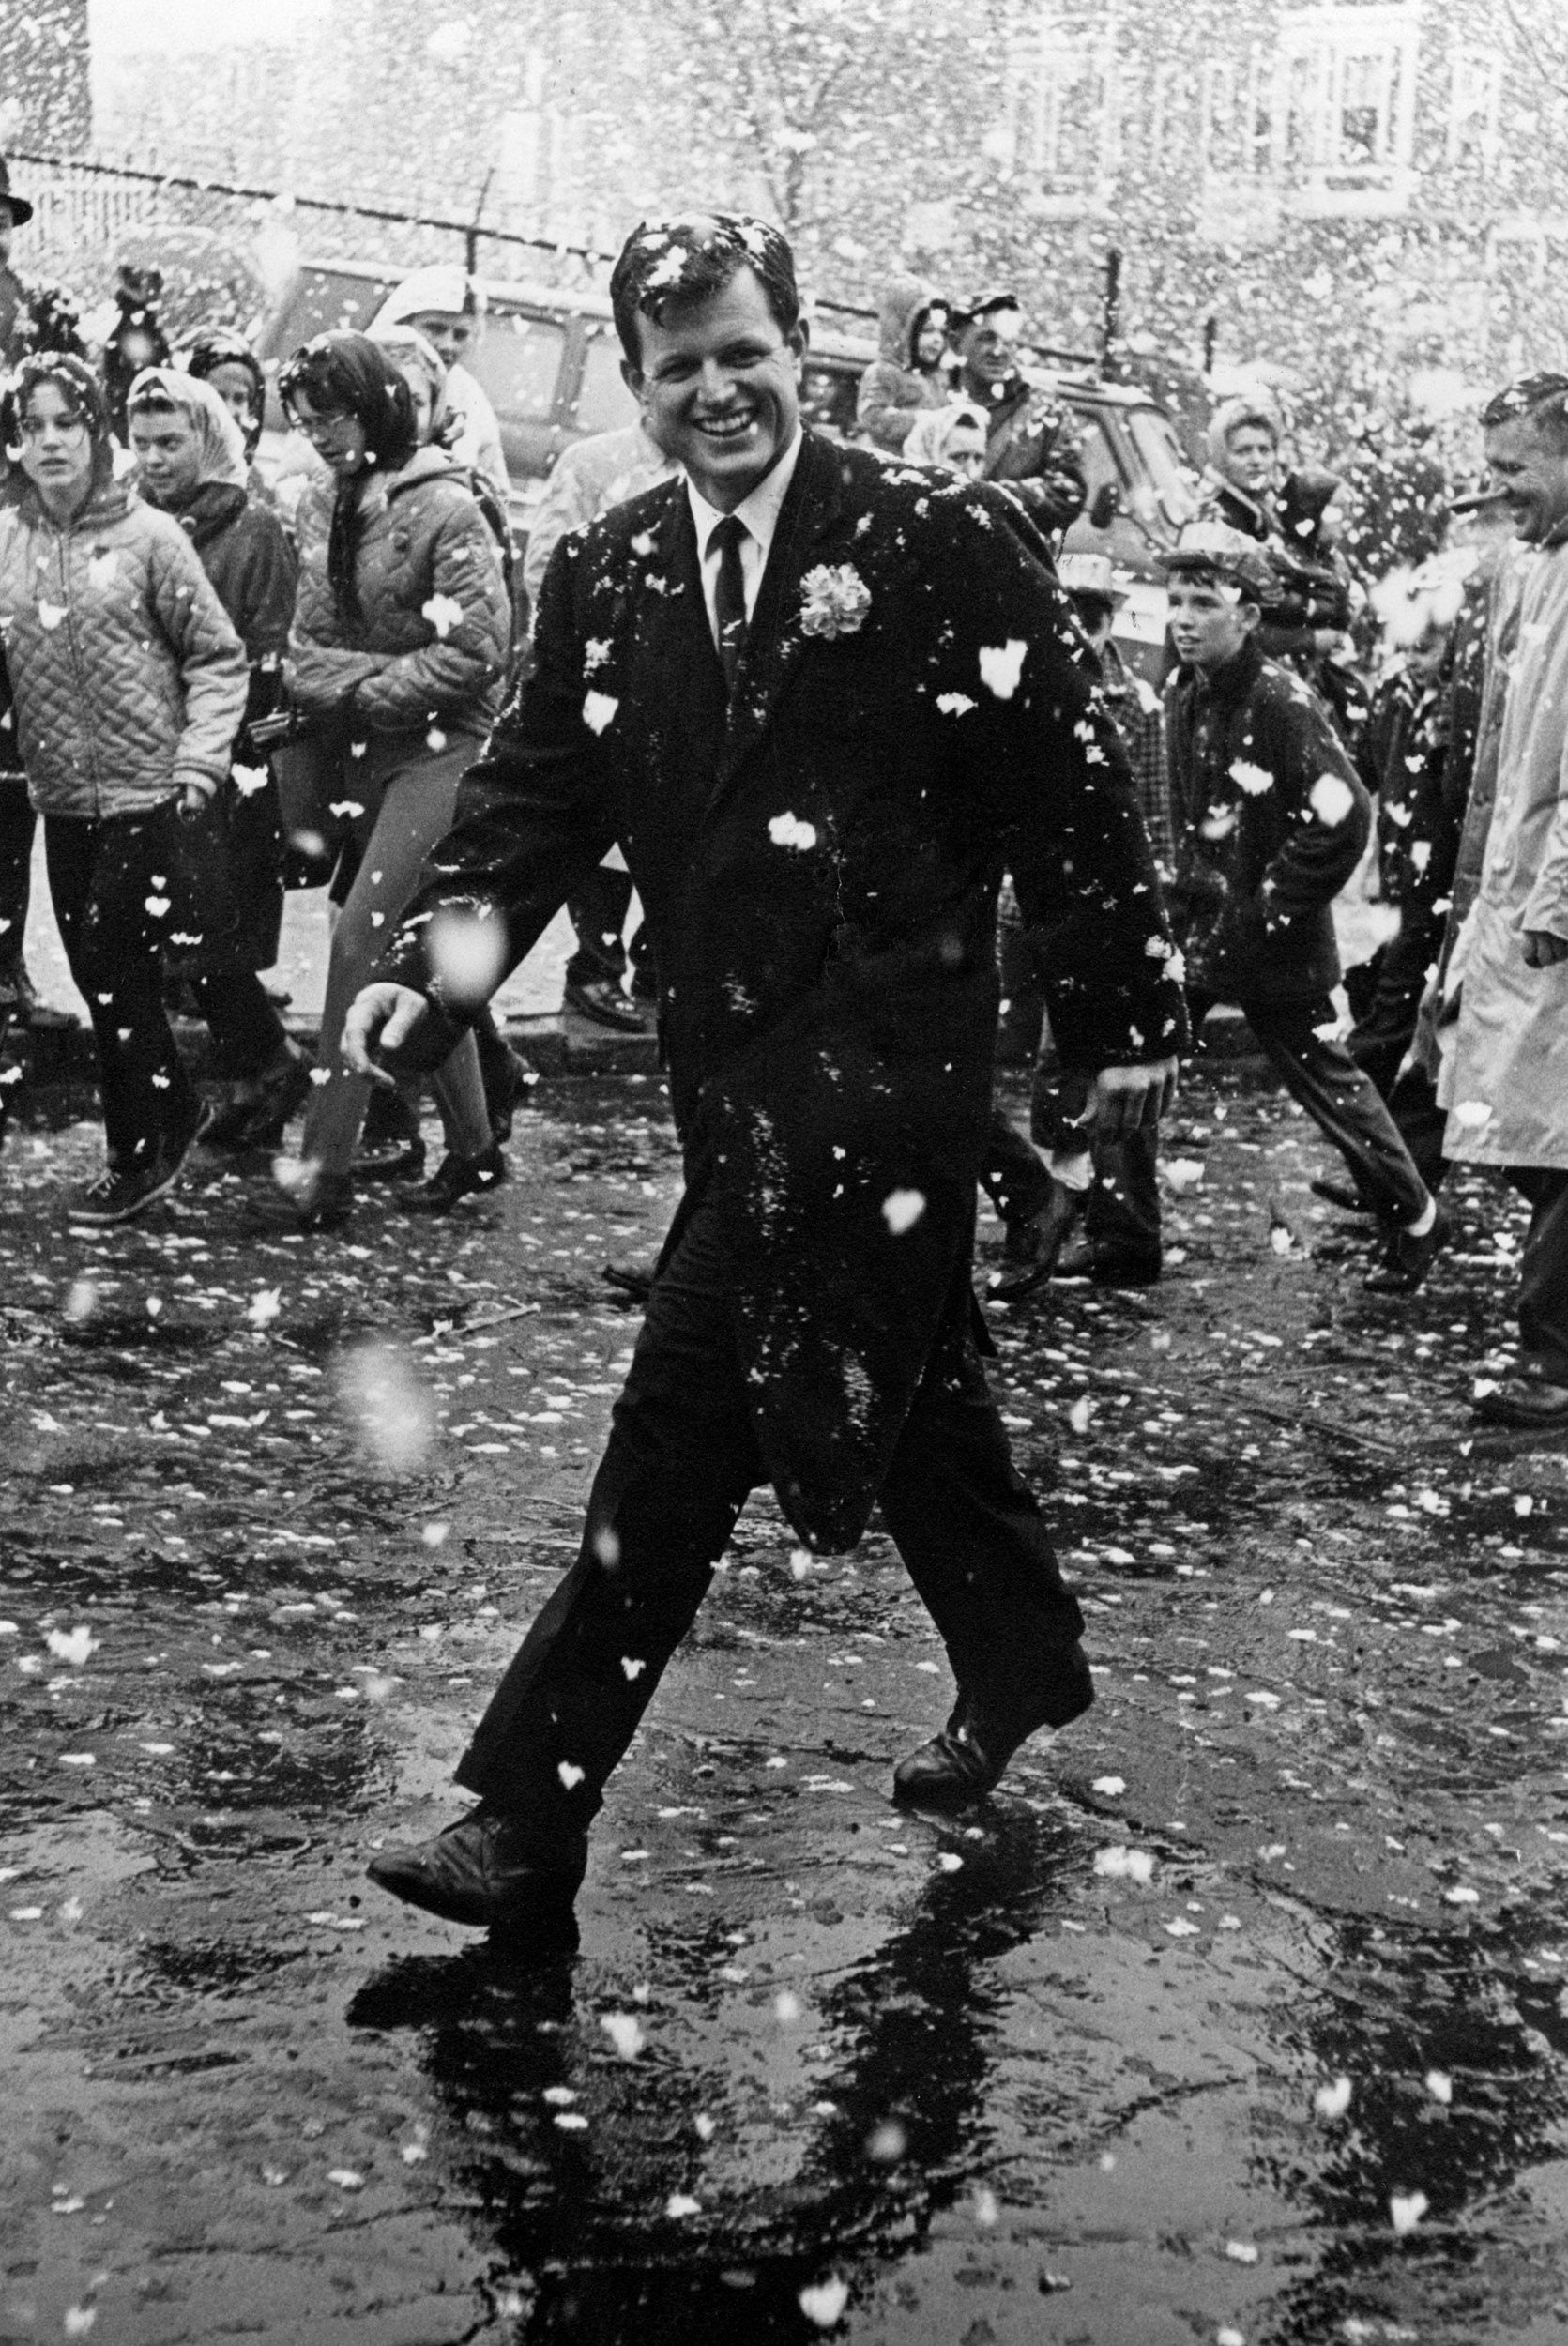 Undaunted by giant snowflakes, Senator Edward M. Kennedy marches in Southie's annual St. Patrick's Day parade in South Boston on March 17, 1964.